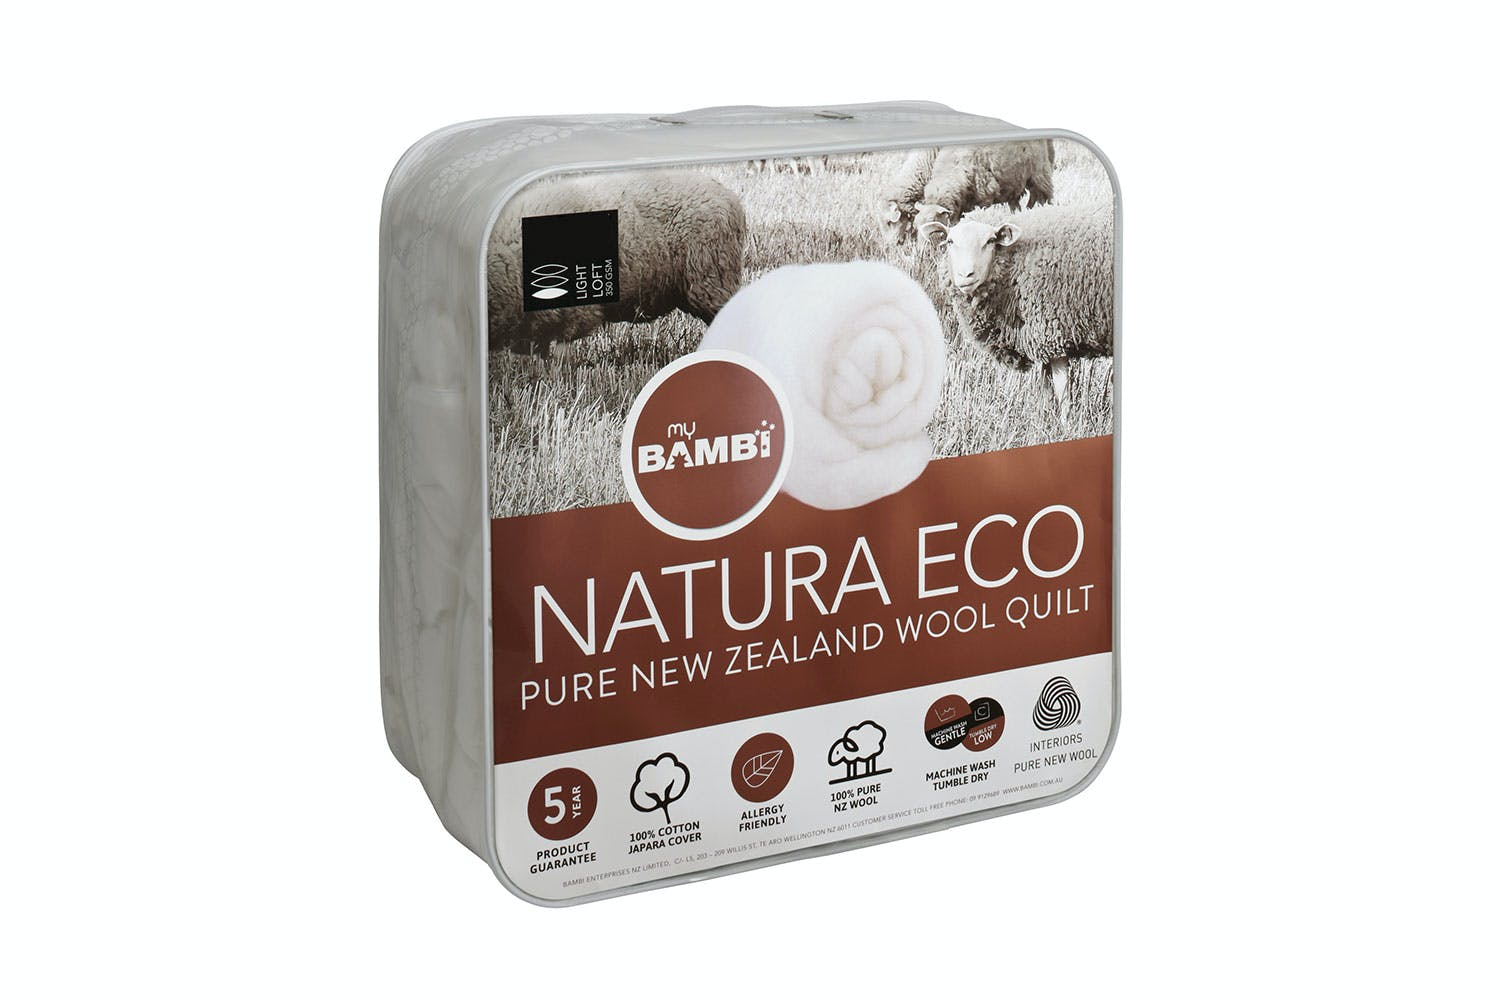 Image of Natura Eco NZ Wool 350gsm Duvet Inner by Bambi